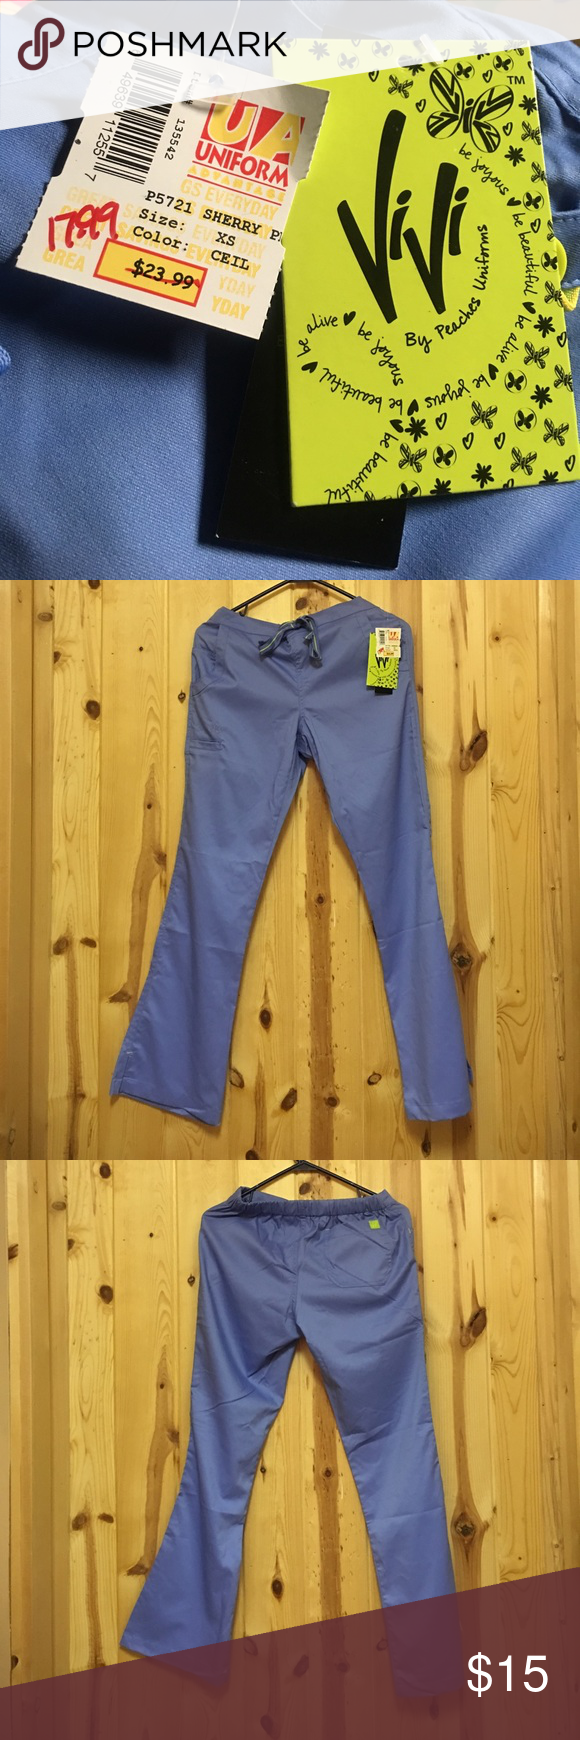 6aaa856e85c Peaches 🍑 ViVi Scrub Pant Blue NWT Peaches 🍑 ViVi Scrub Pant Blue NWT Pant  has two Side Pockets and one Back Pocket Has leg pocket with a butterfly 🦋  by ...